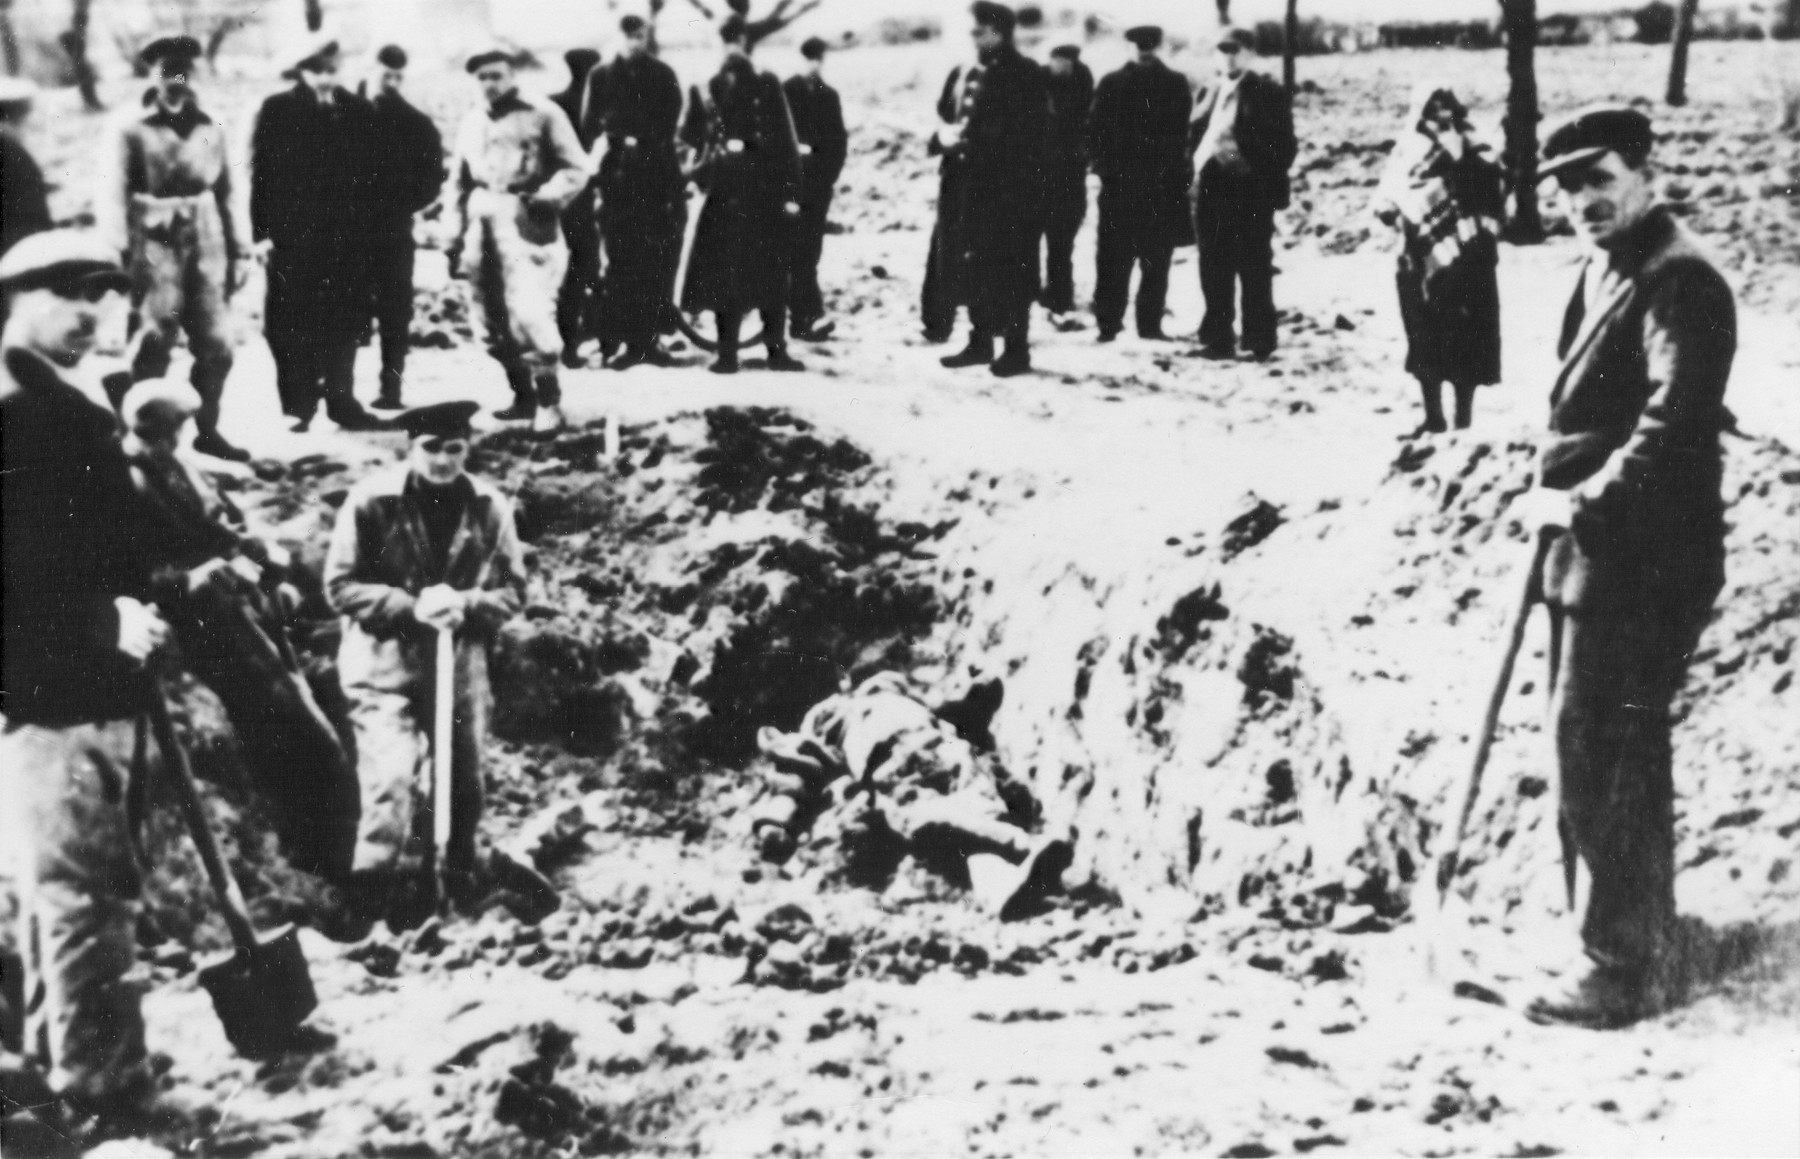 Laborers exhume the corpses of people shot during an action on 12 May 1942.    Among those pictured is the group leader, Zygmunt Opala.